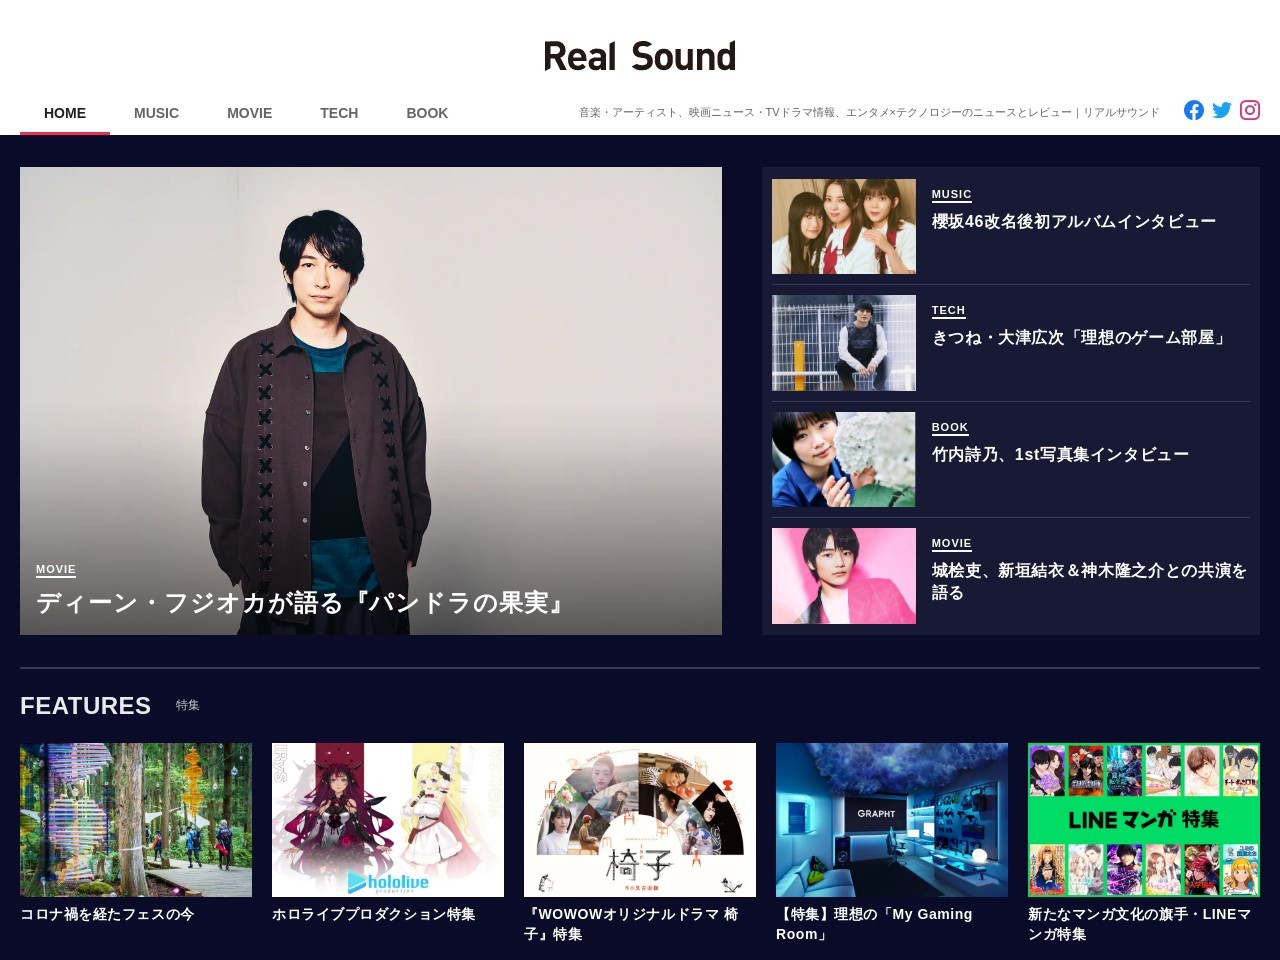 https://realsound.jp/2018/10/post-267089.html